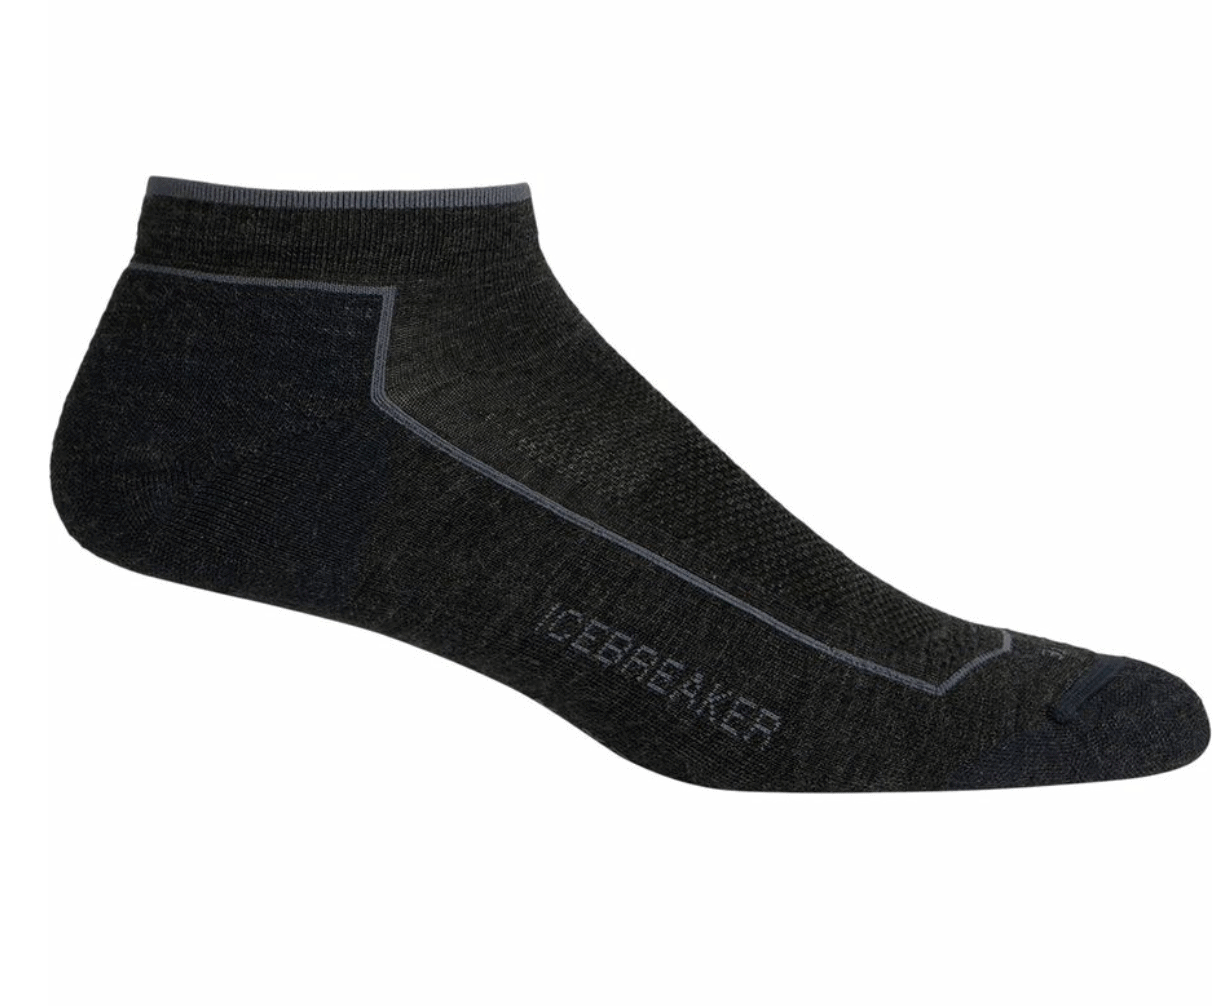 Icebreaker lightweight merino wool socks for summer hiking